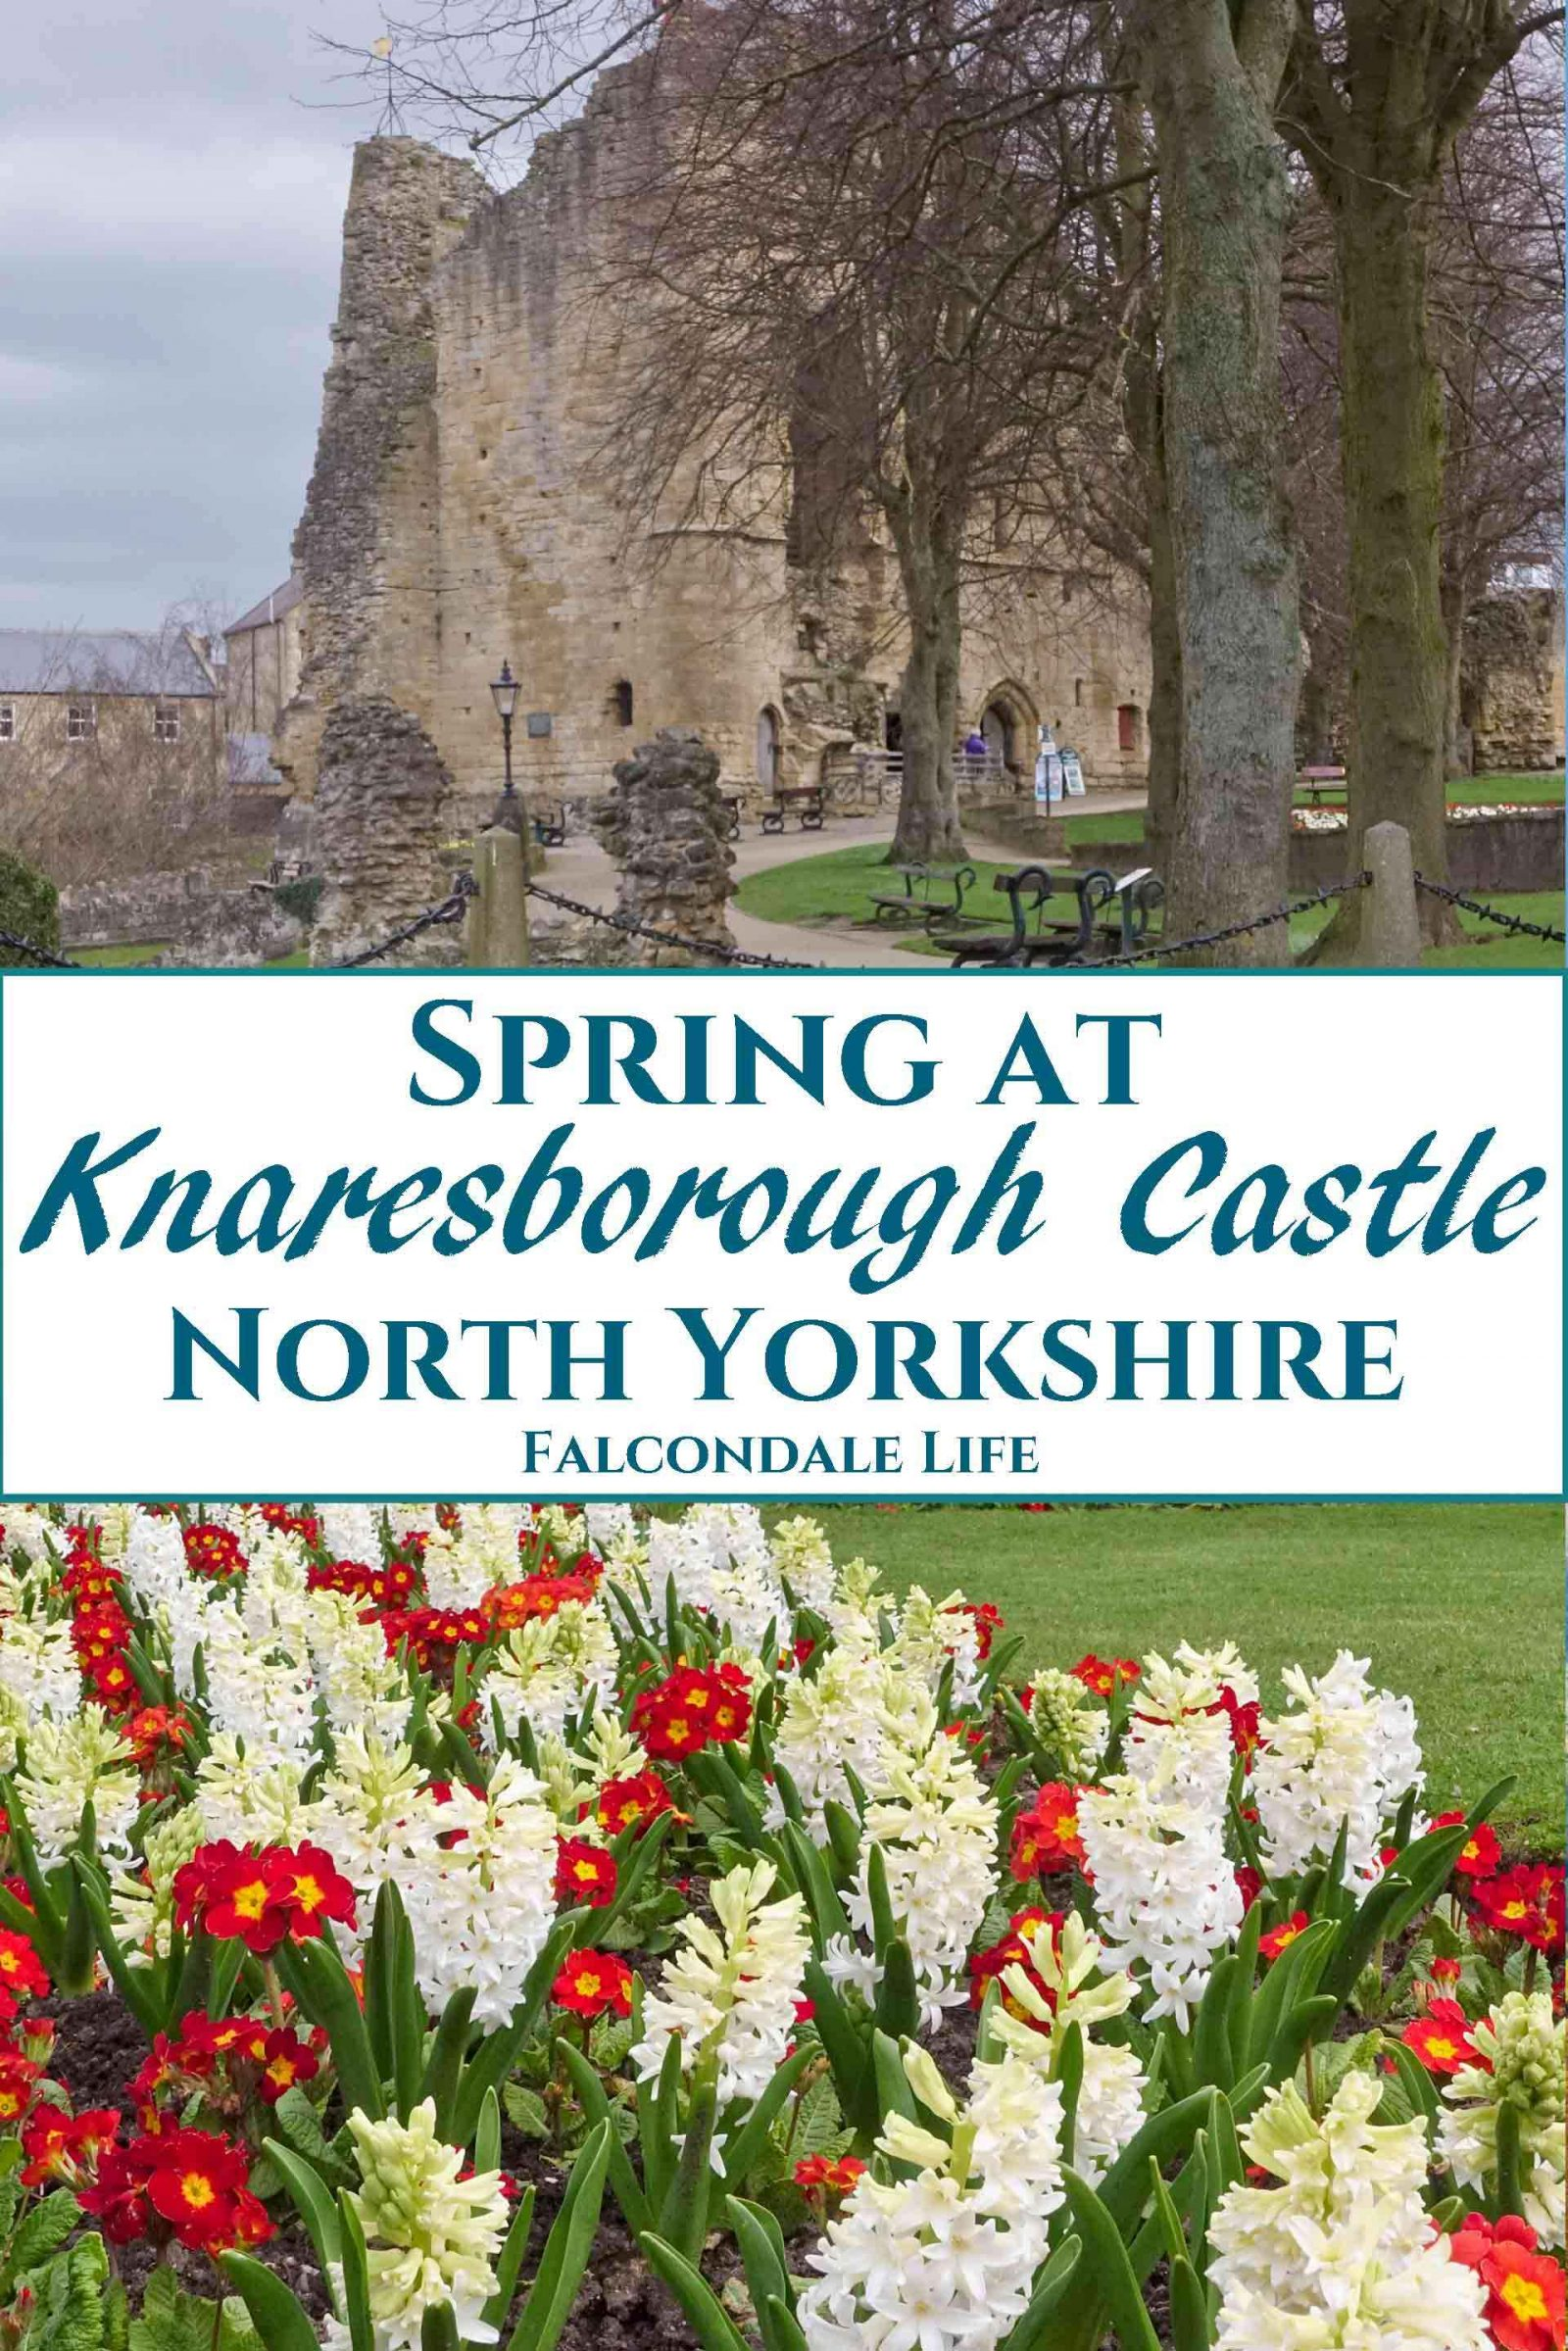 Spring at Knaresborough Castle North Yorkshire on Falcondale Life blog. This charming North Yorkshire town ha a castle, gorge views and lots to explore. Get a discount on accommodation in time for the Great Knaresborough Bed Race, one of the most eccentric English sporting events of the year.